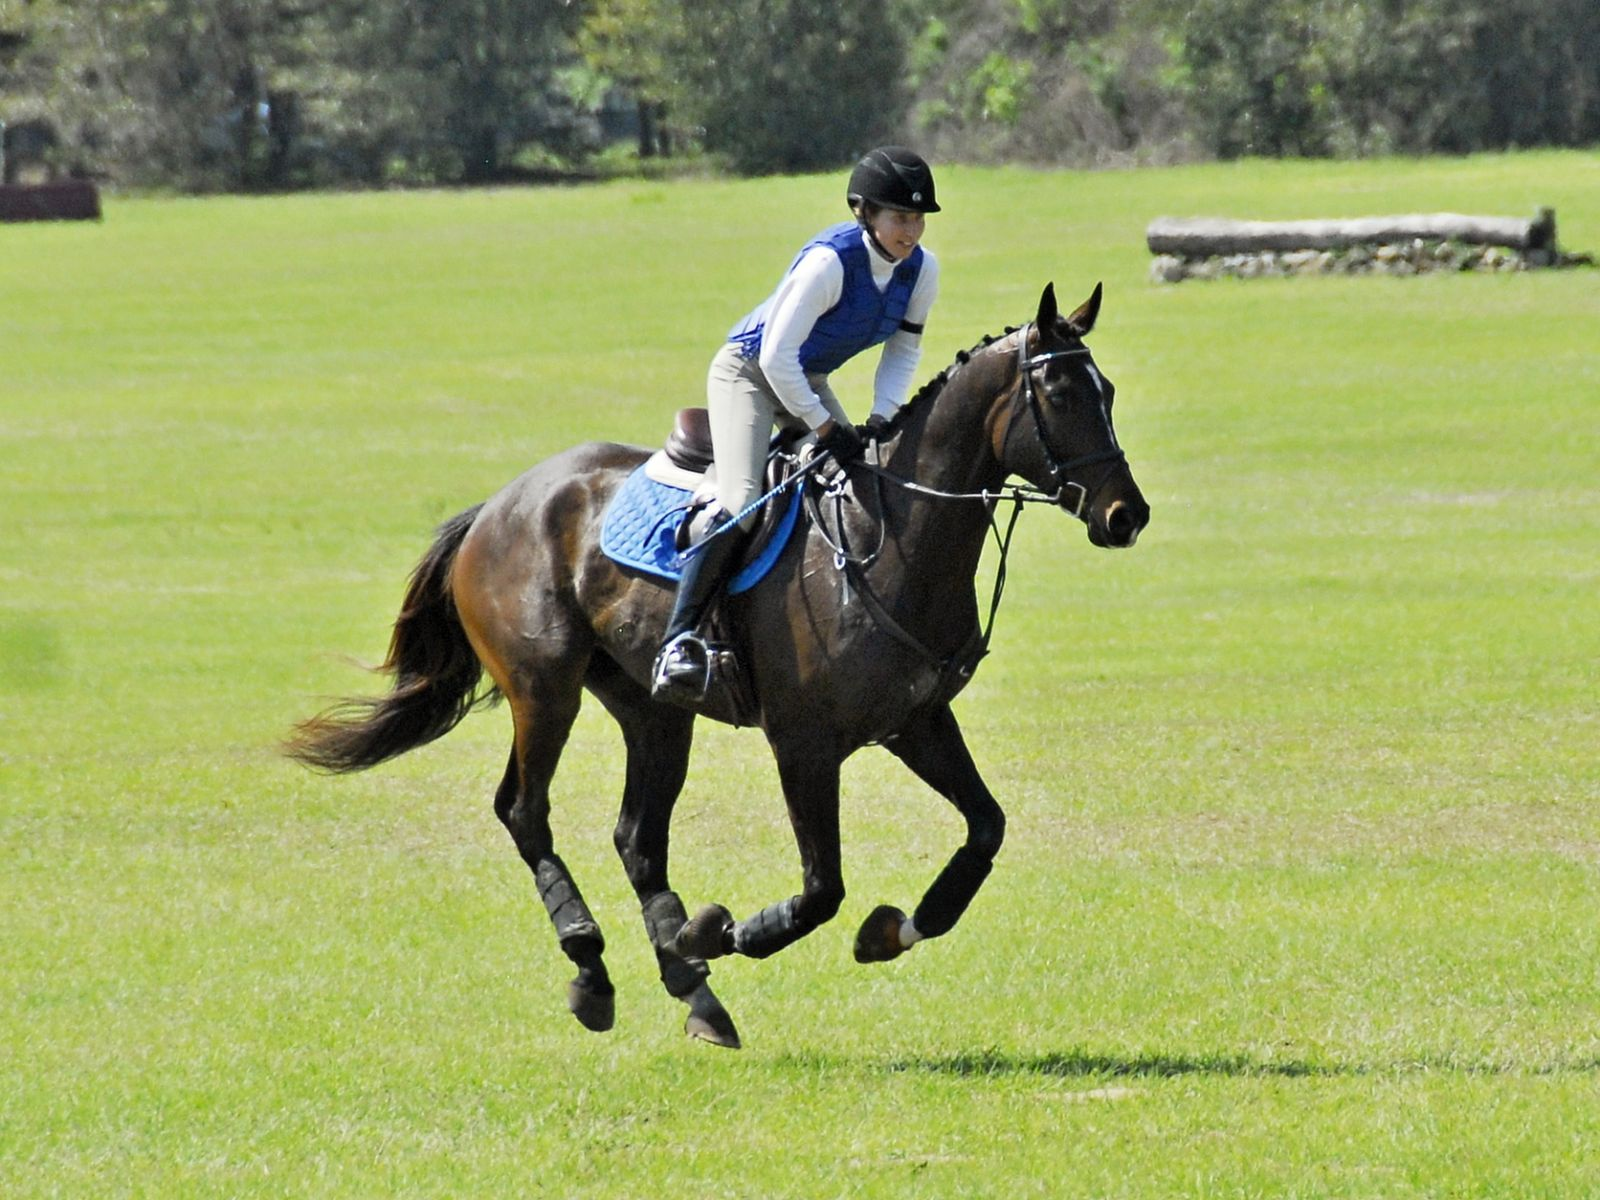 Aero gallops around his first full cross-country course at Beginner Novice. Photo by Ivegotyourpicture.com.